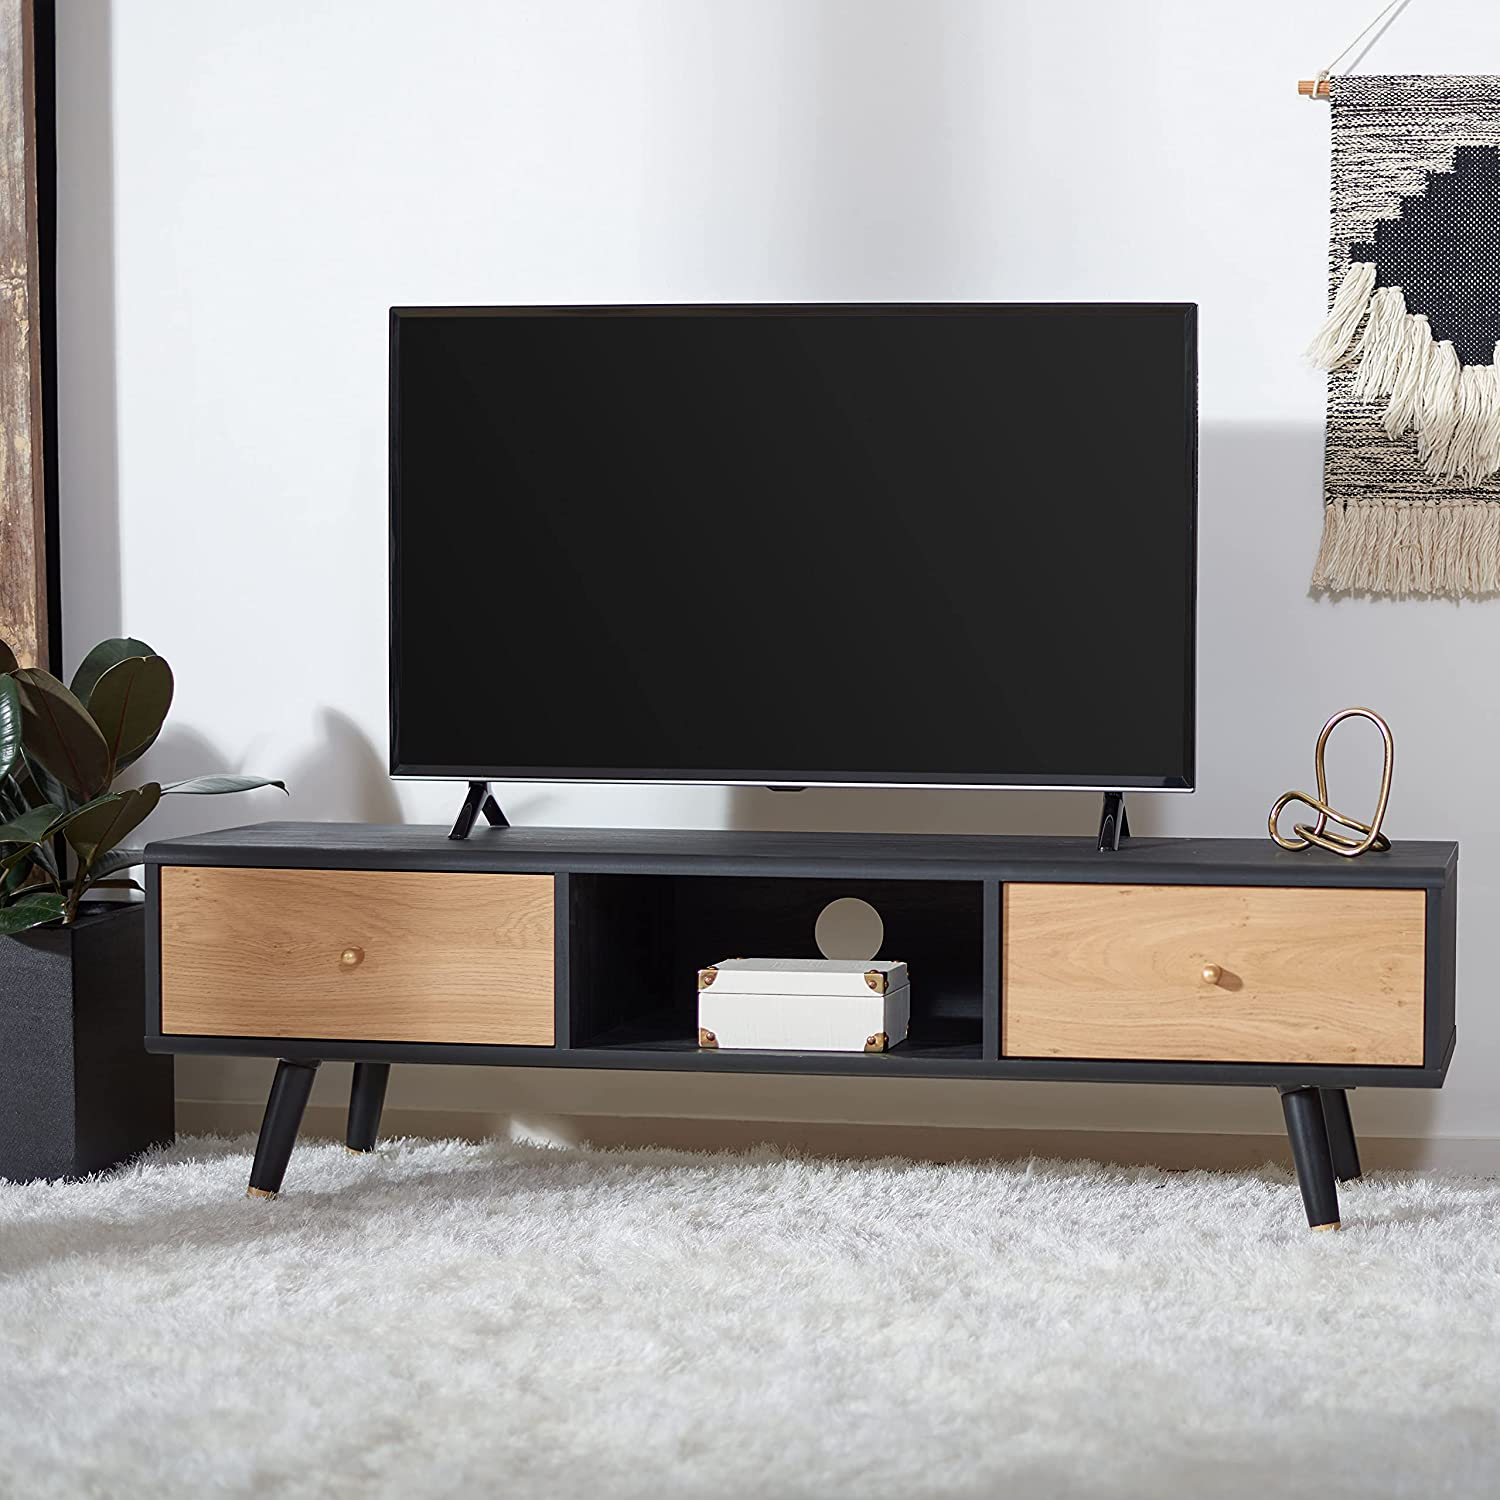 Safavieh Home Collection Beatrix Black and Oak 2-Drawer 1-Shelf Media (60-inch Flat Screen) TV Stand